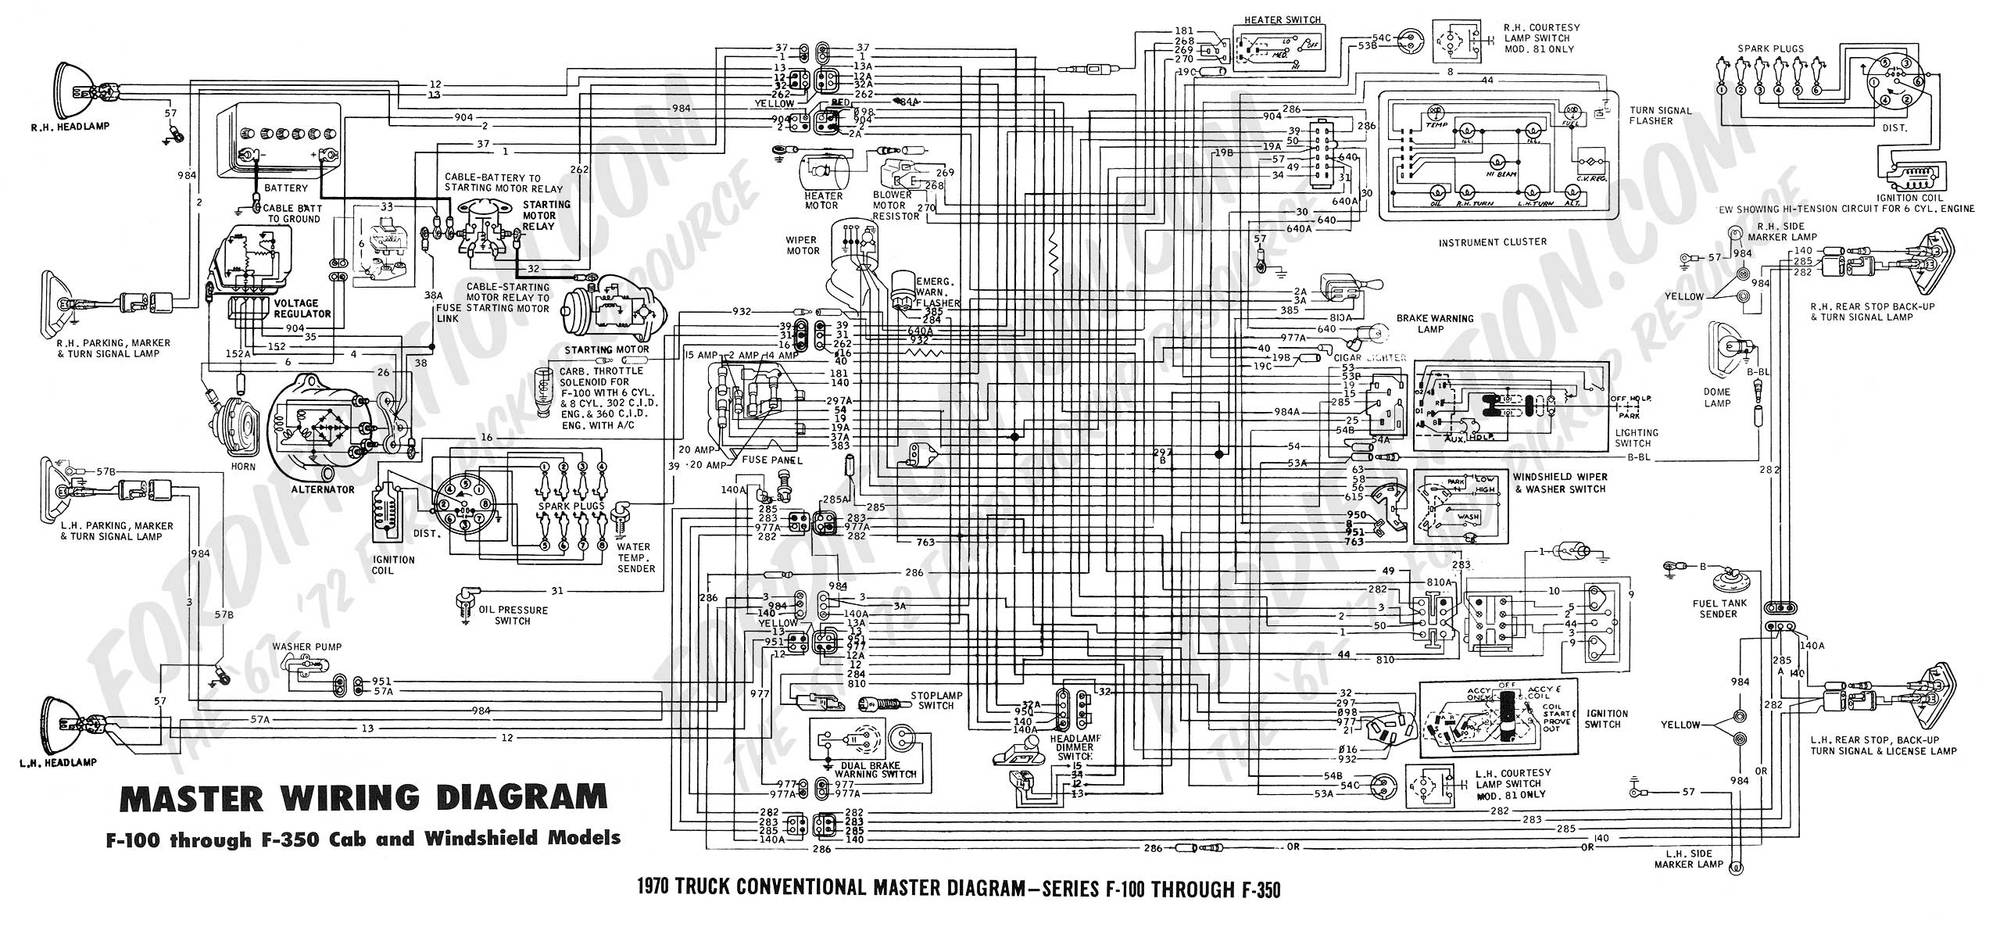 motor wiring diagram u v w 2004 chevy silverado radio ecm 33920 67h2 k6a 26 34 connector h